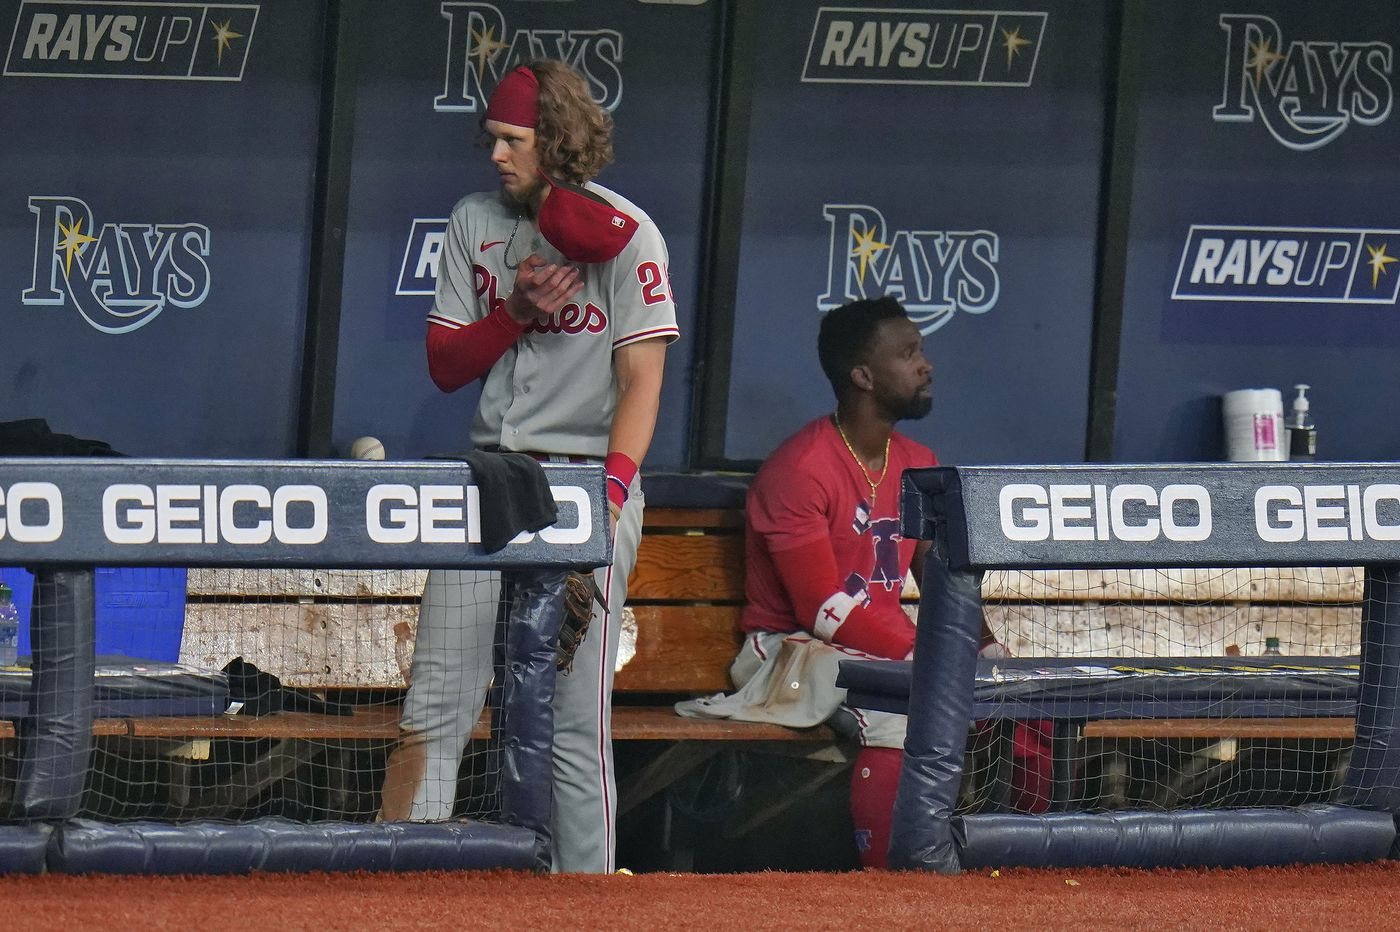 Phillies' playoff hopes pushed to brink after 4-3 loss to Rays